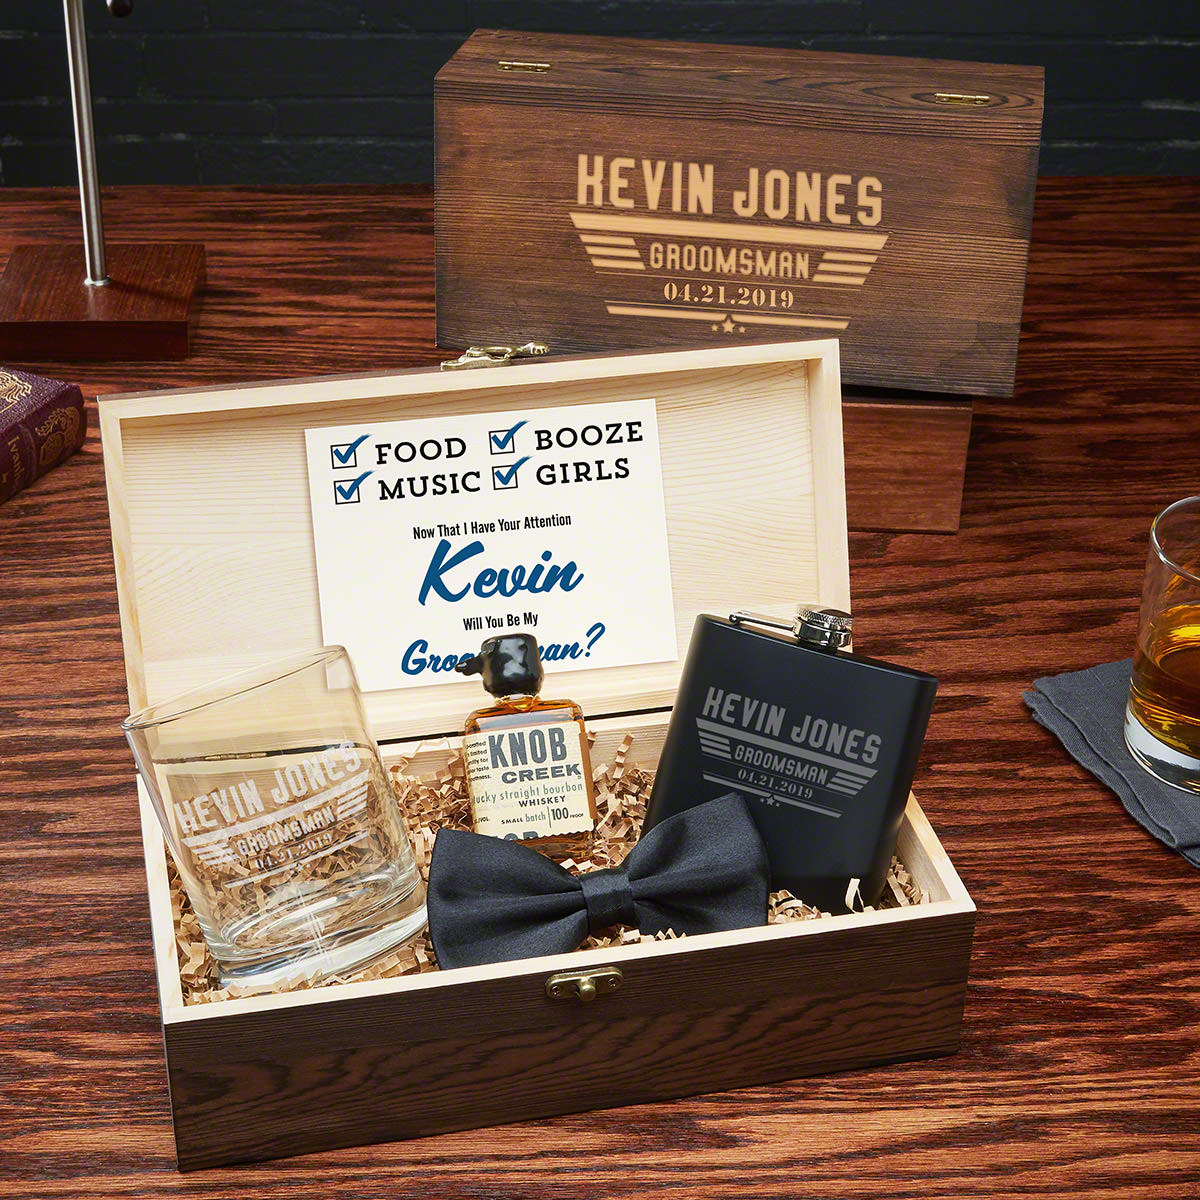 Go ahead and make their day. You know that the men in the wedding procession could use a little surprise gift set in their mailbox. Go out of your way and give the groomsmen and best man in the wedding a customized five piece set that they will flip over, #best